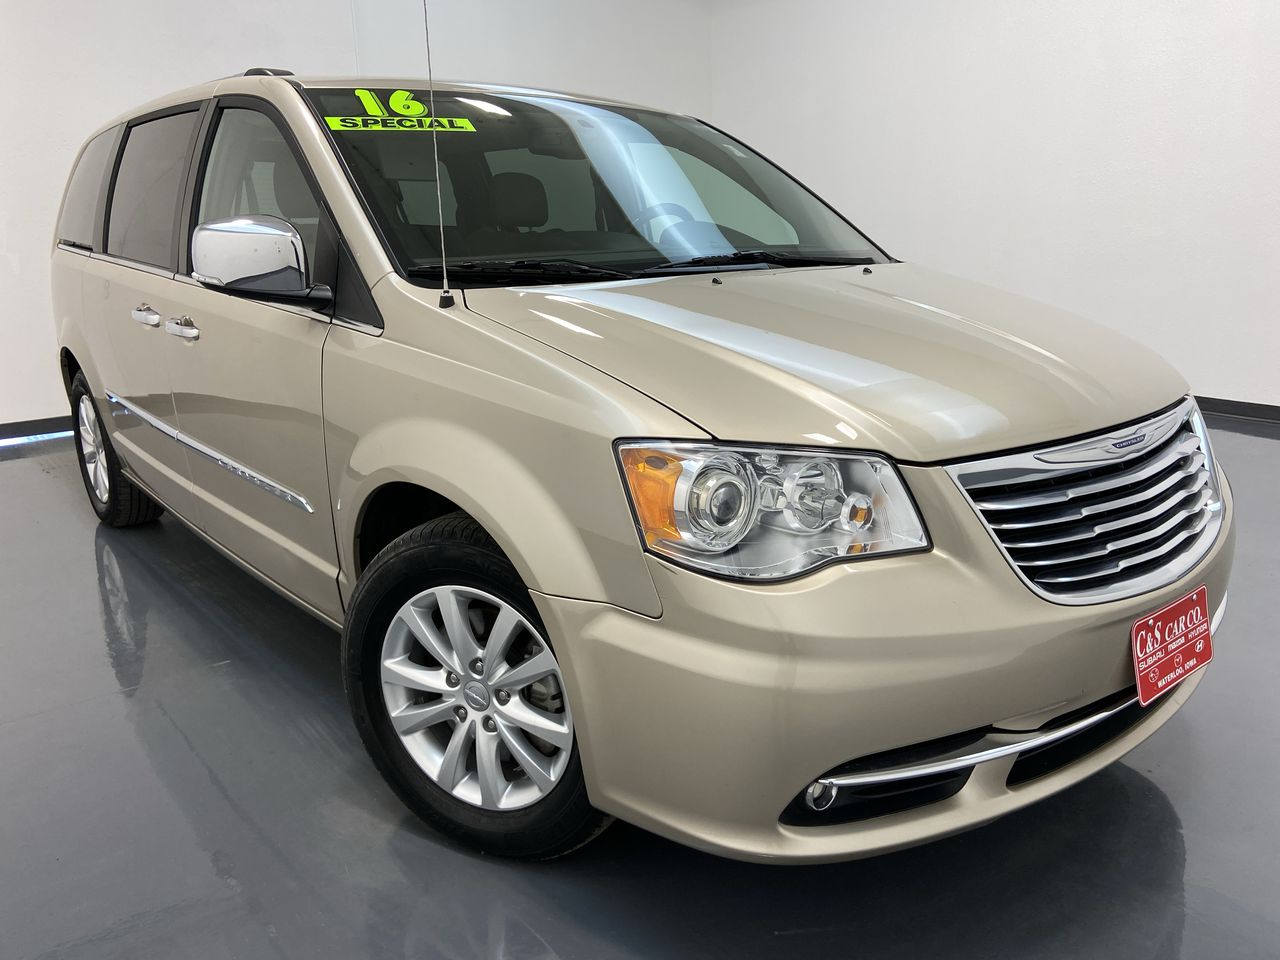 2016 Chrysler Town & Country Wagon LWB  - 16307  - C & S Car Company